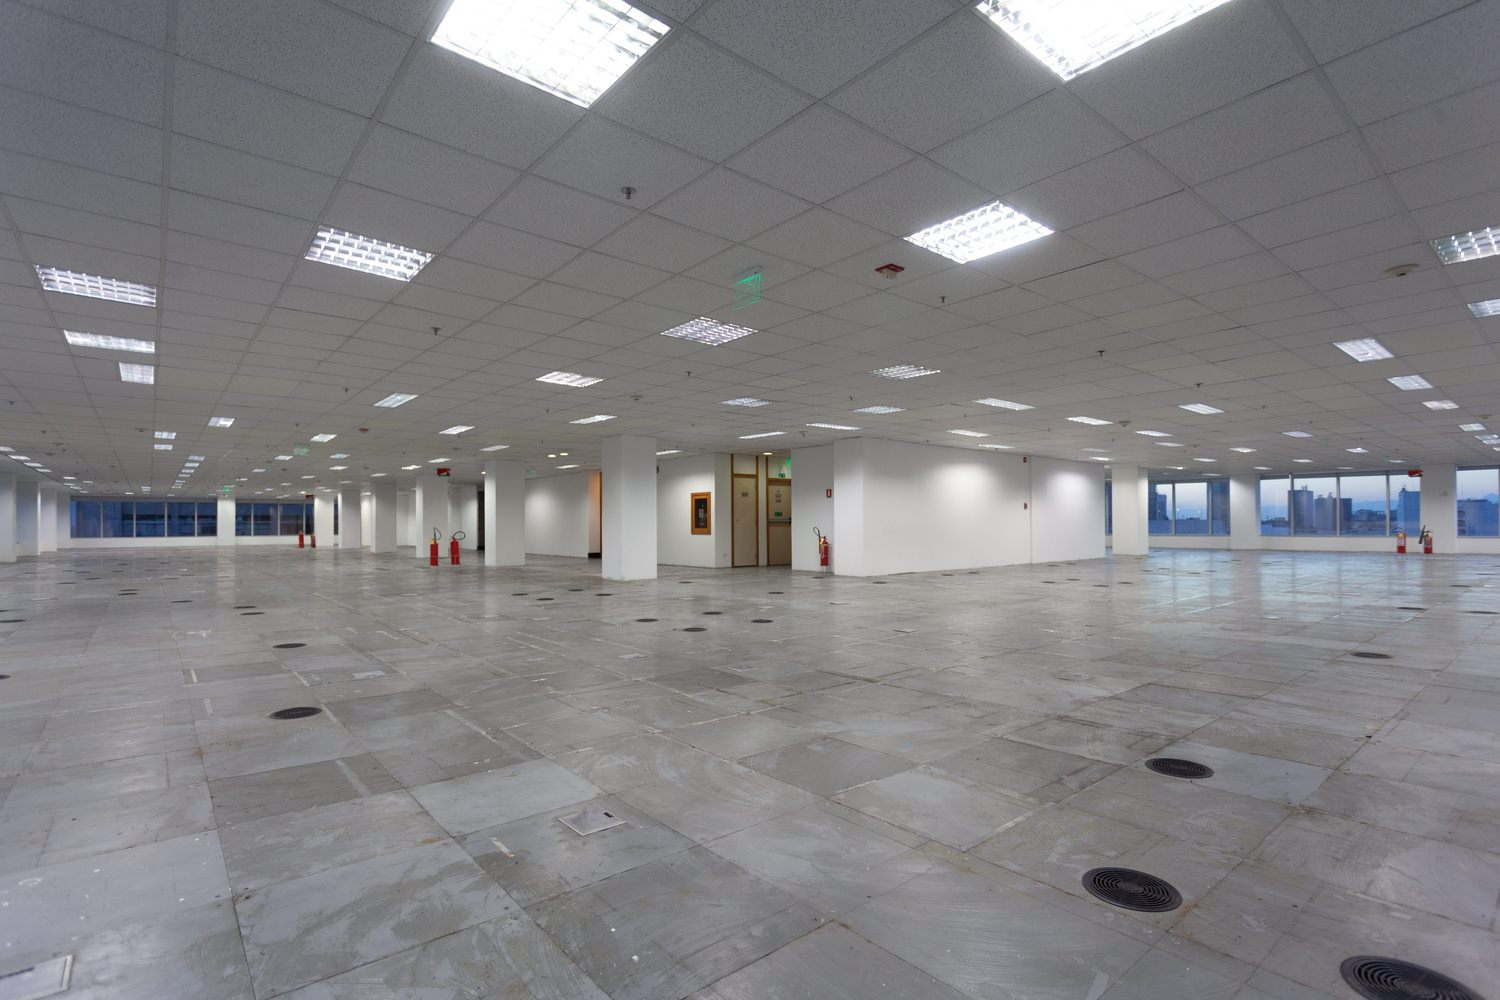 Large empty room that is full of white panels on the ceiling and grey tiles on the floor.